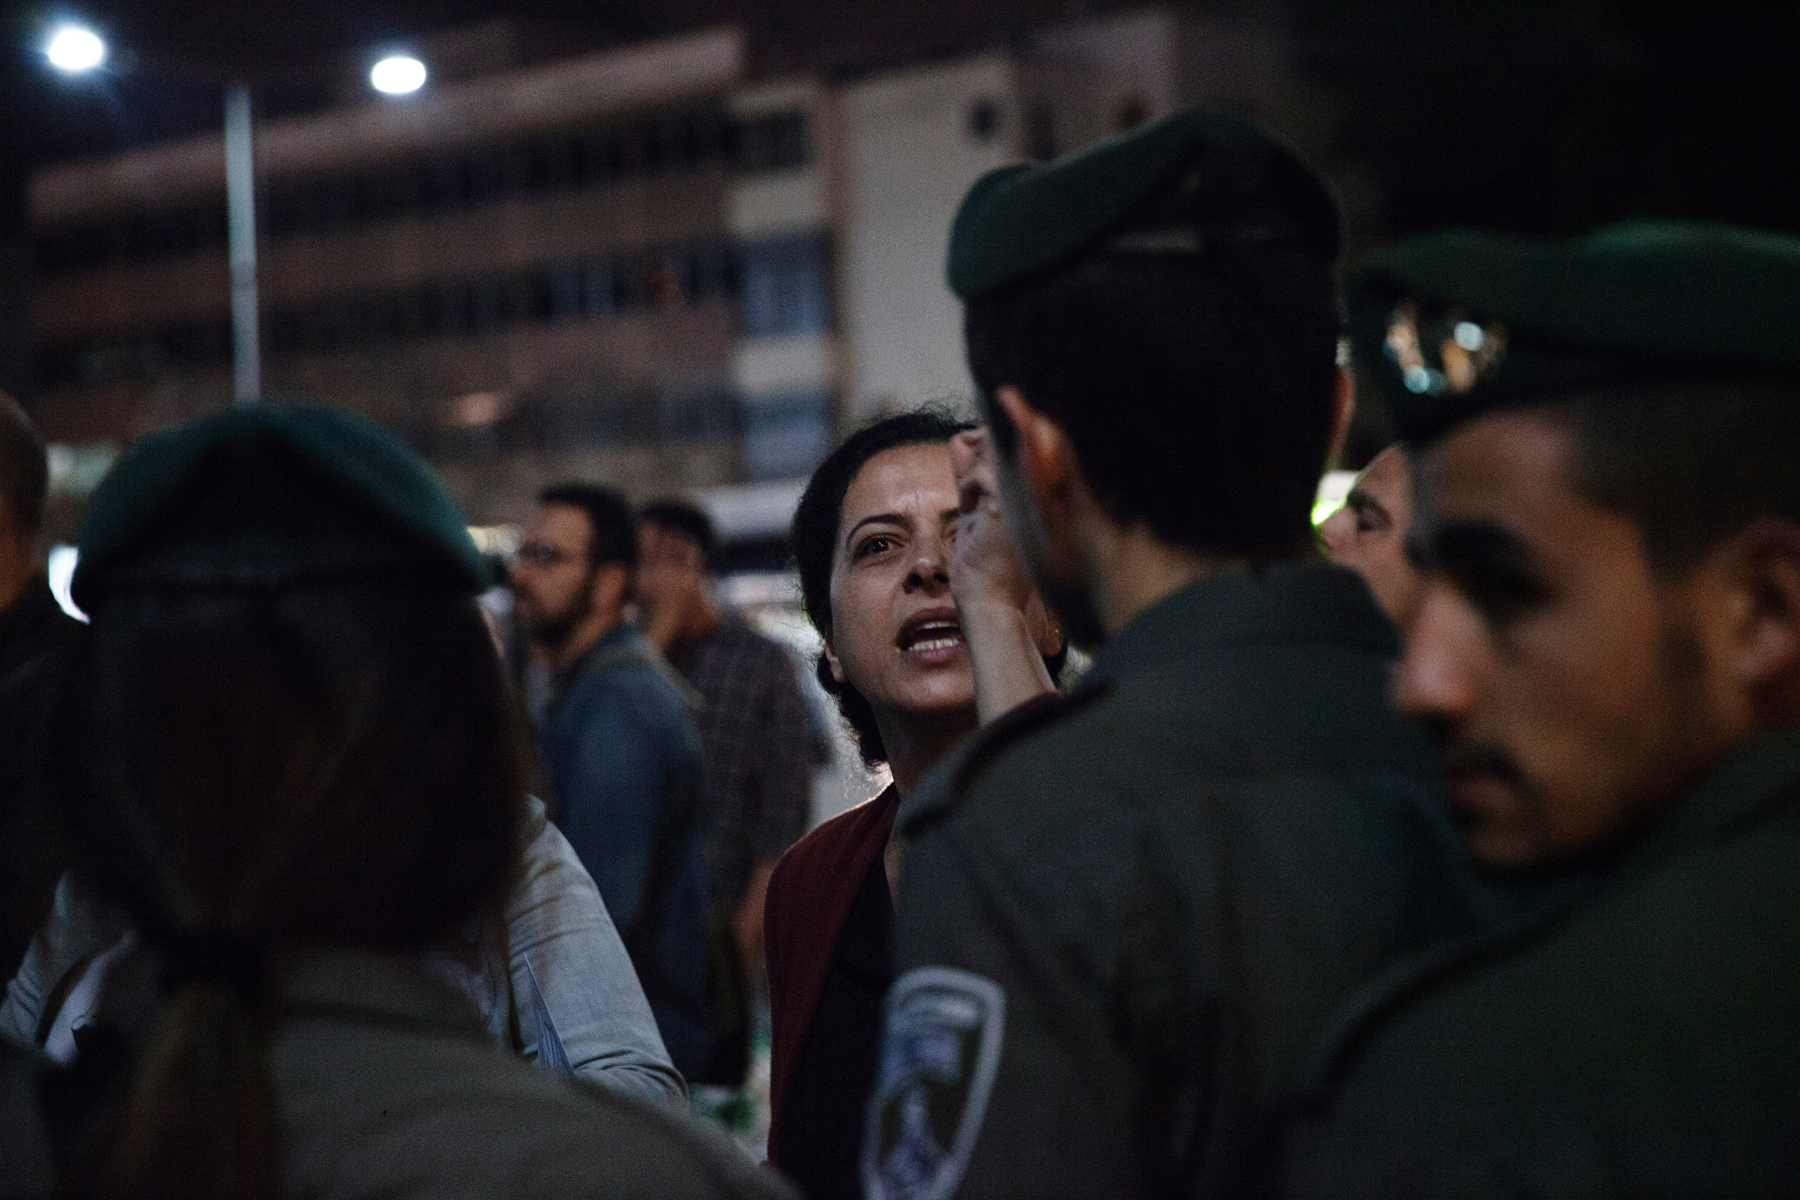 An anti-refugee protester argued with border police officers at a demonstration in Tel Aviv.